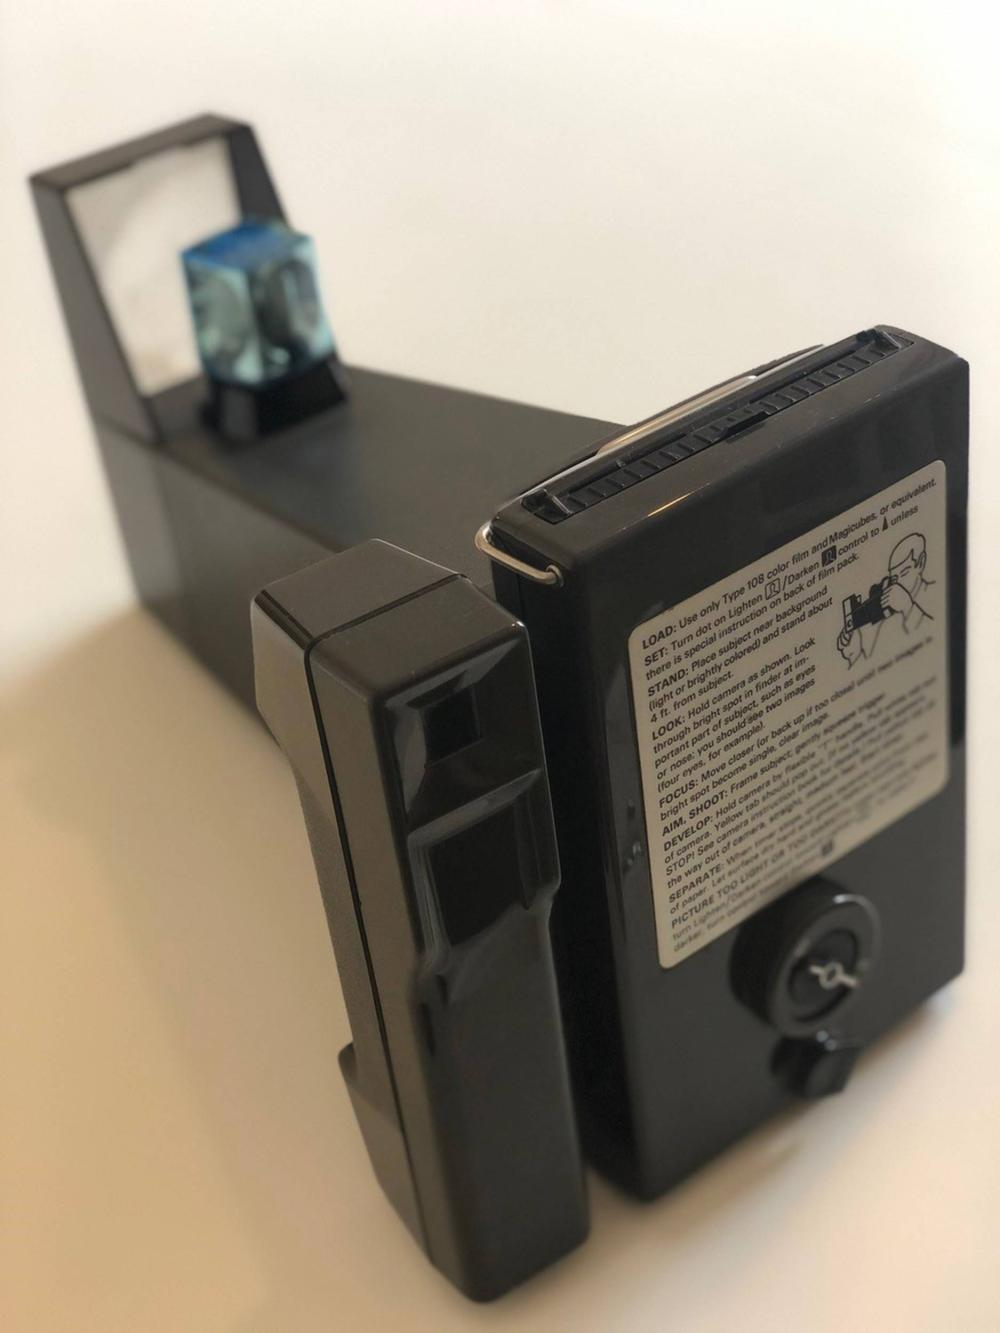 Andy Warhol's Personally Owned Iconic Polaroid Big Shot Camera W. Superb Provenance